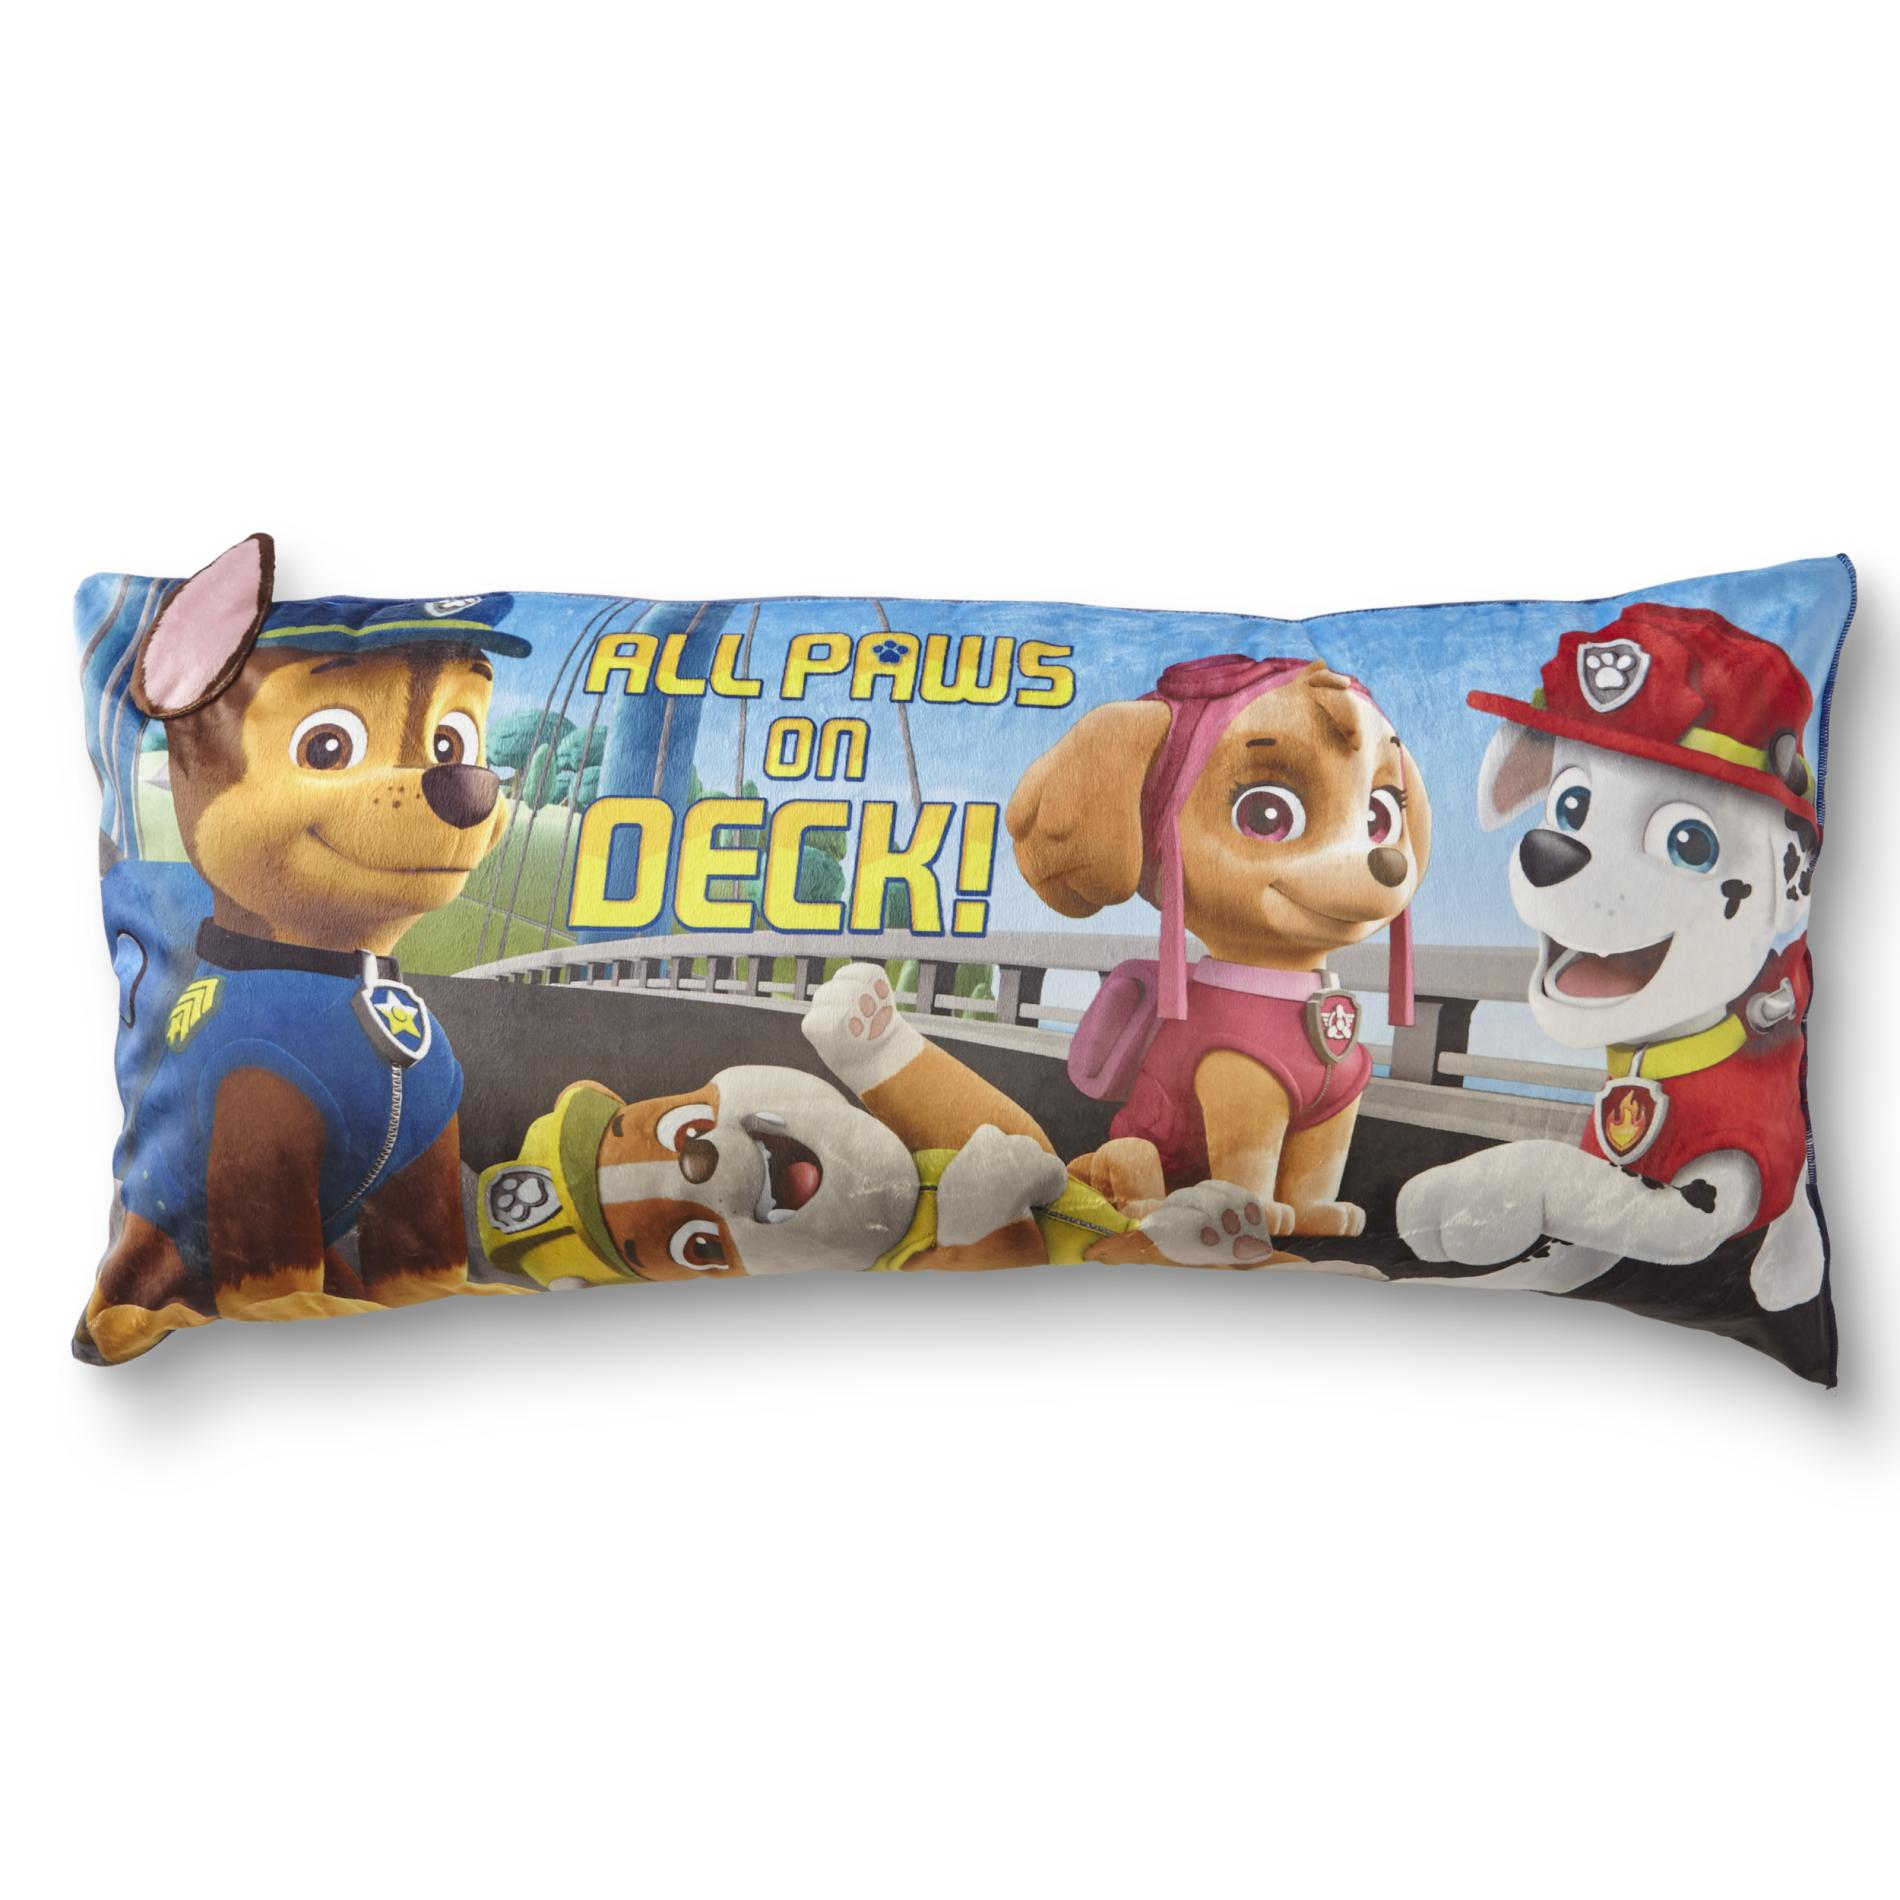 Nickelodeon Paw Patrol Kids Body Pillow All Paws On Deck